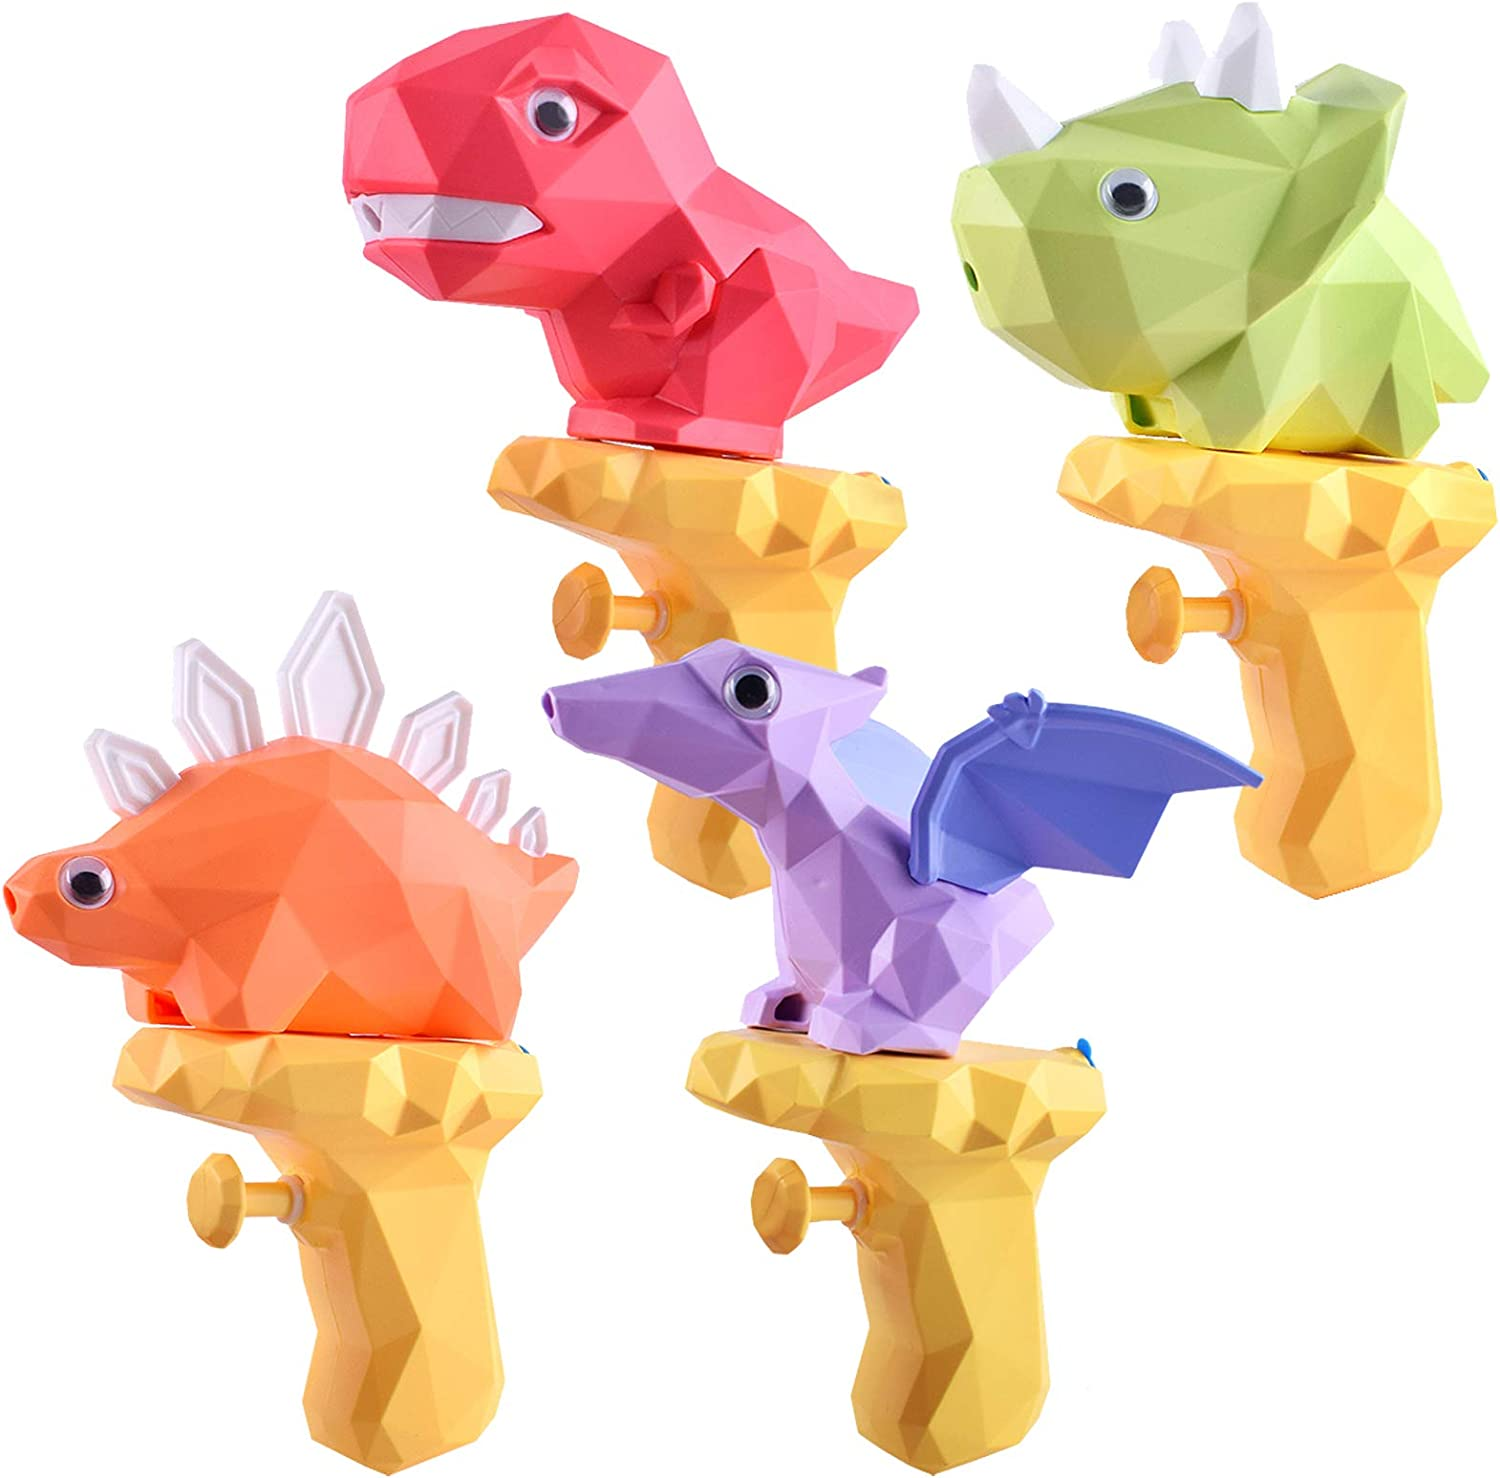 TICZLOE Water Gun, 4 Pack Water Guns for Kids Dinosaur Squirt Gun 150ml Capacity, Small Water Pistols for Boys and Girls Toddlers in Bath Pool Party Favors Summer Water Toys